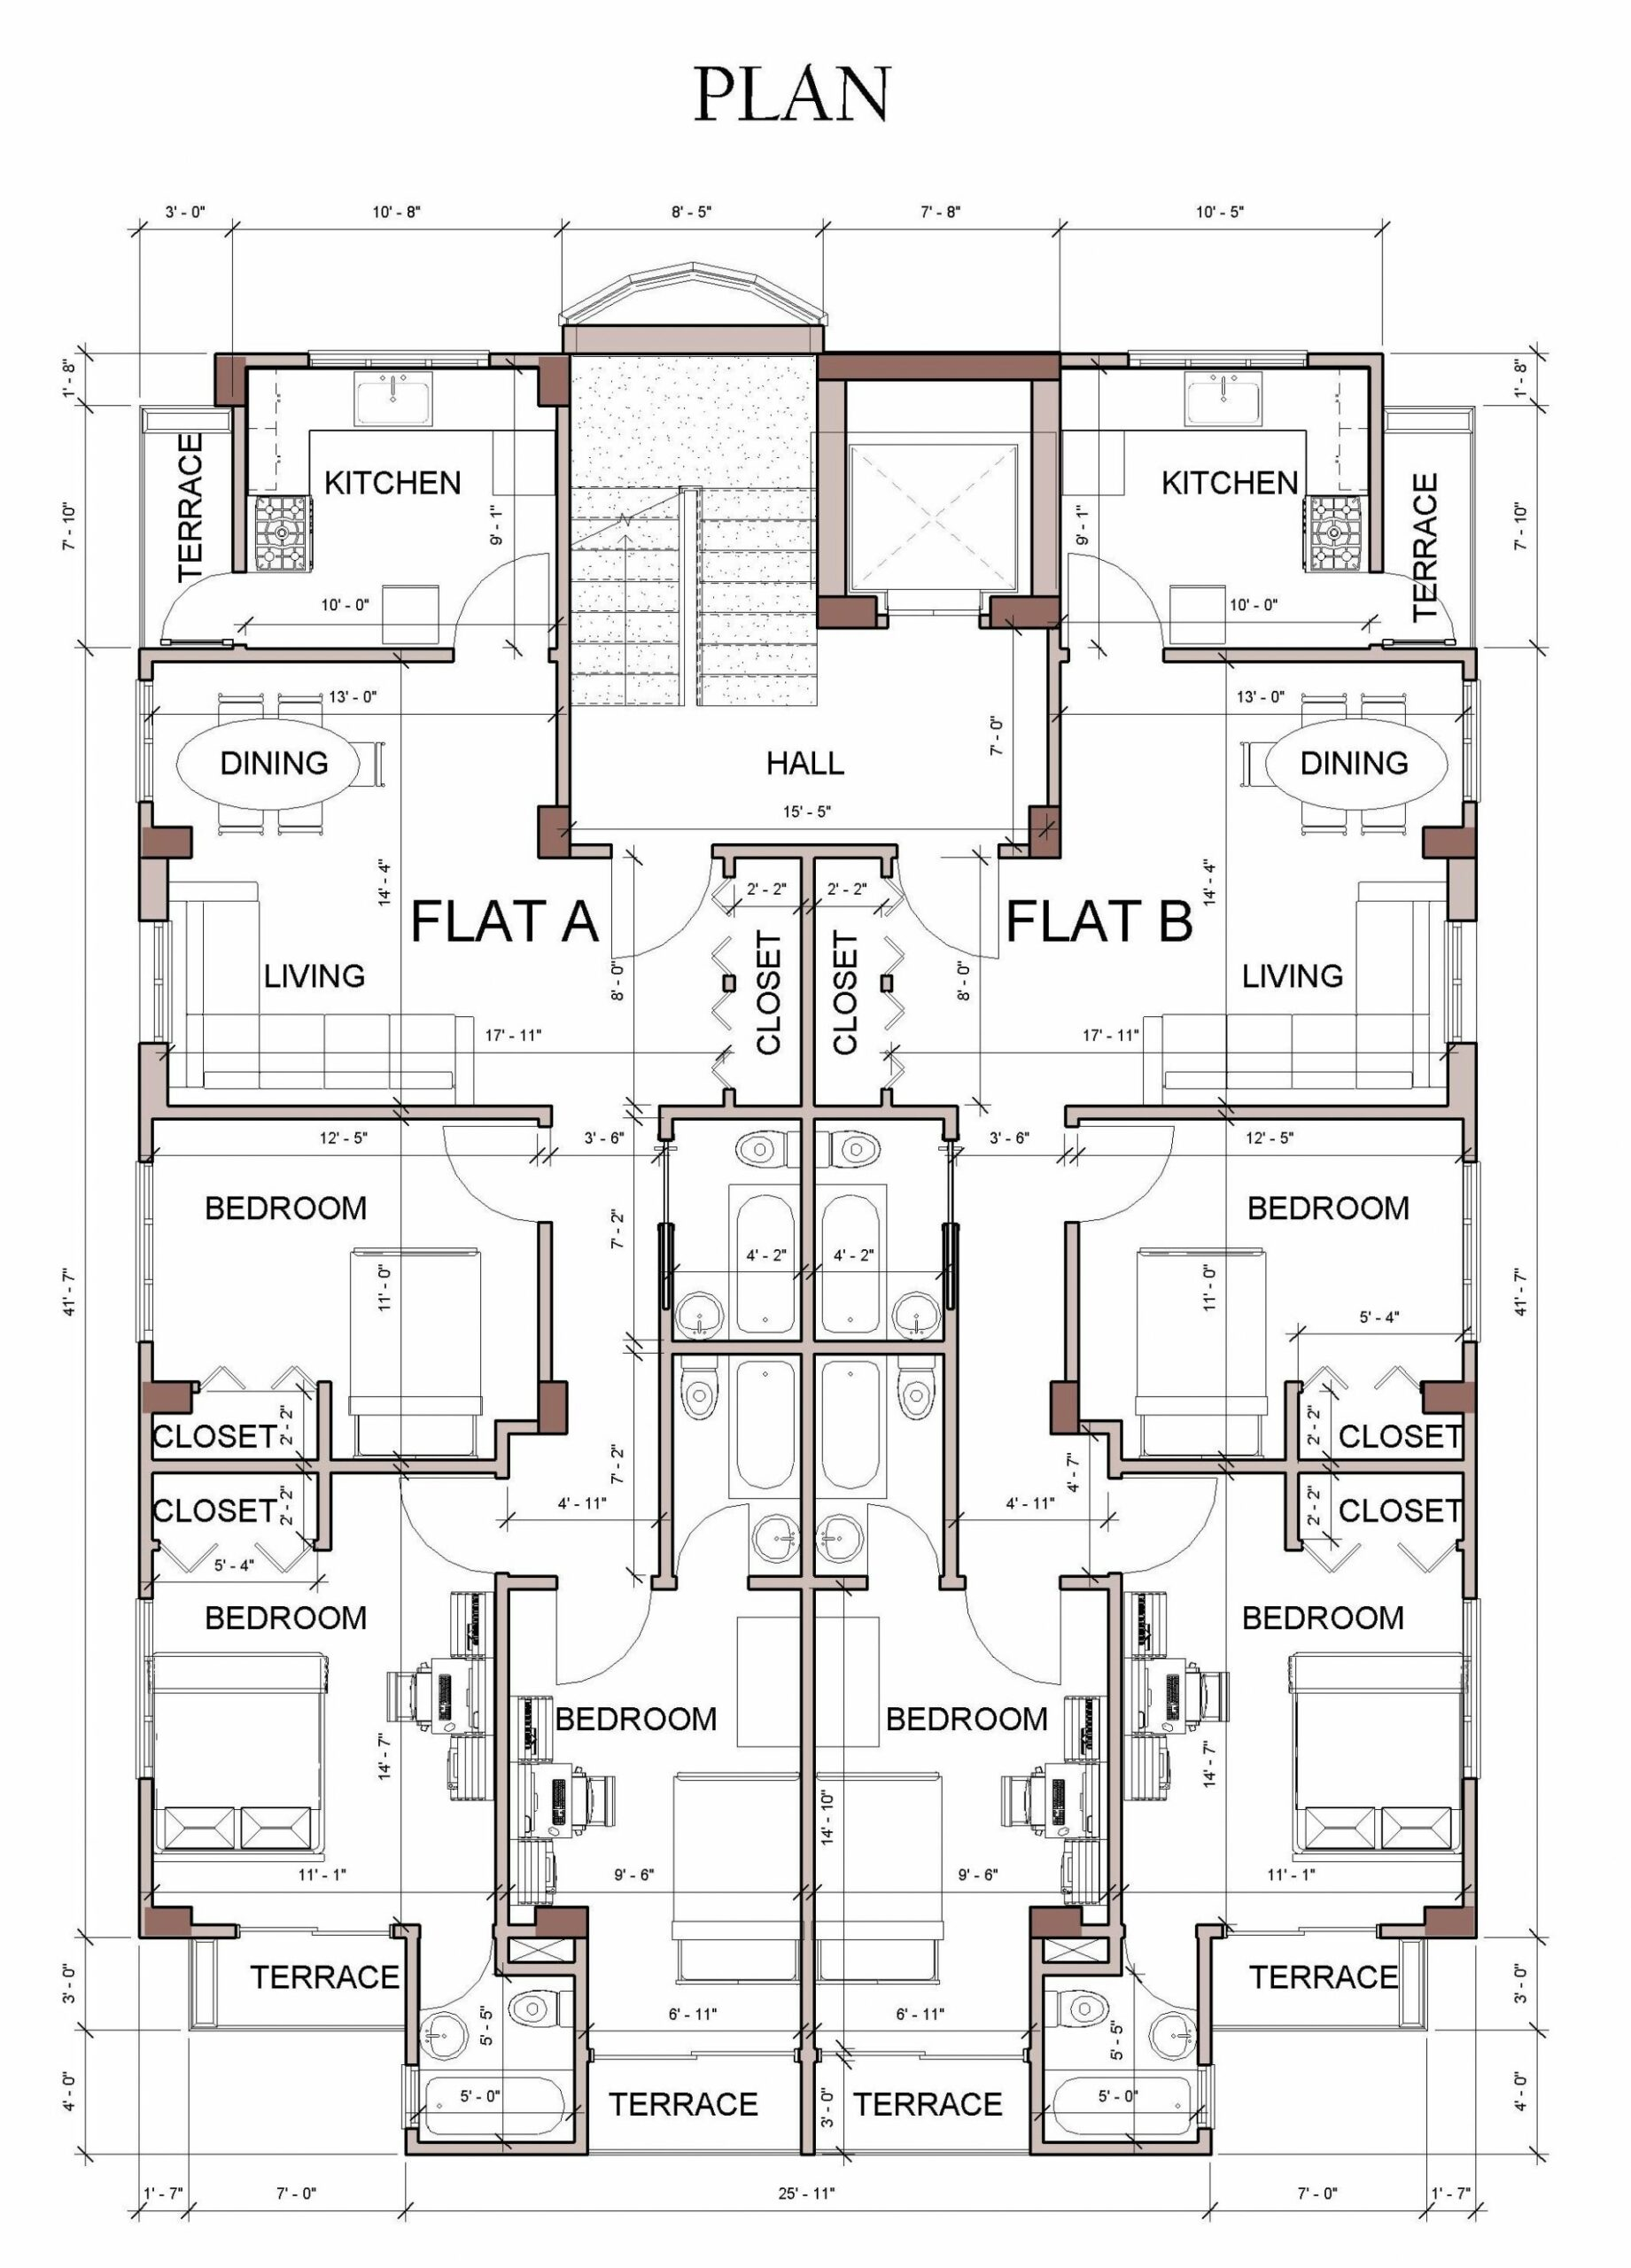 Typical floor plan (With images) | Architectural floor plans ..